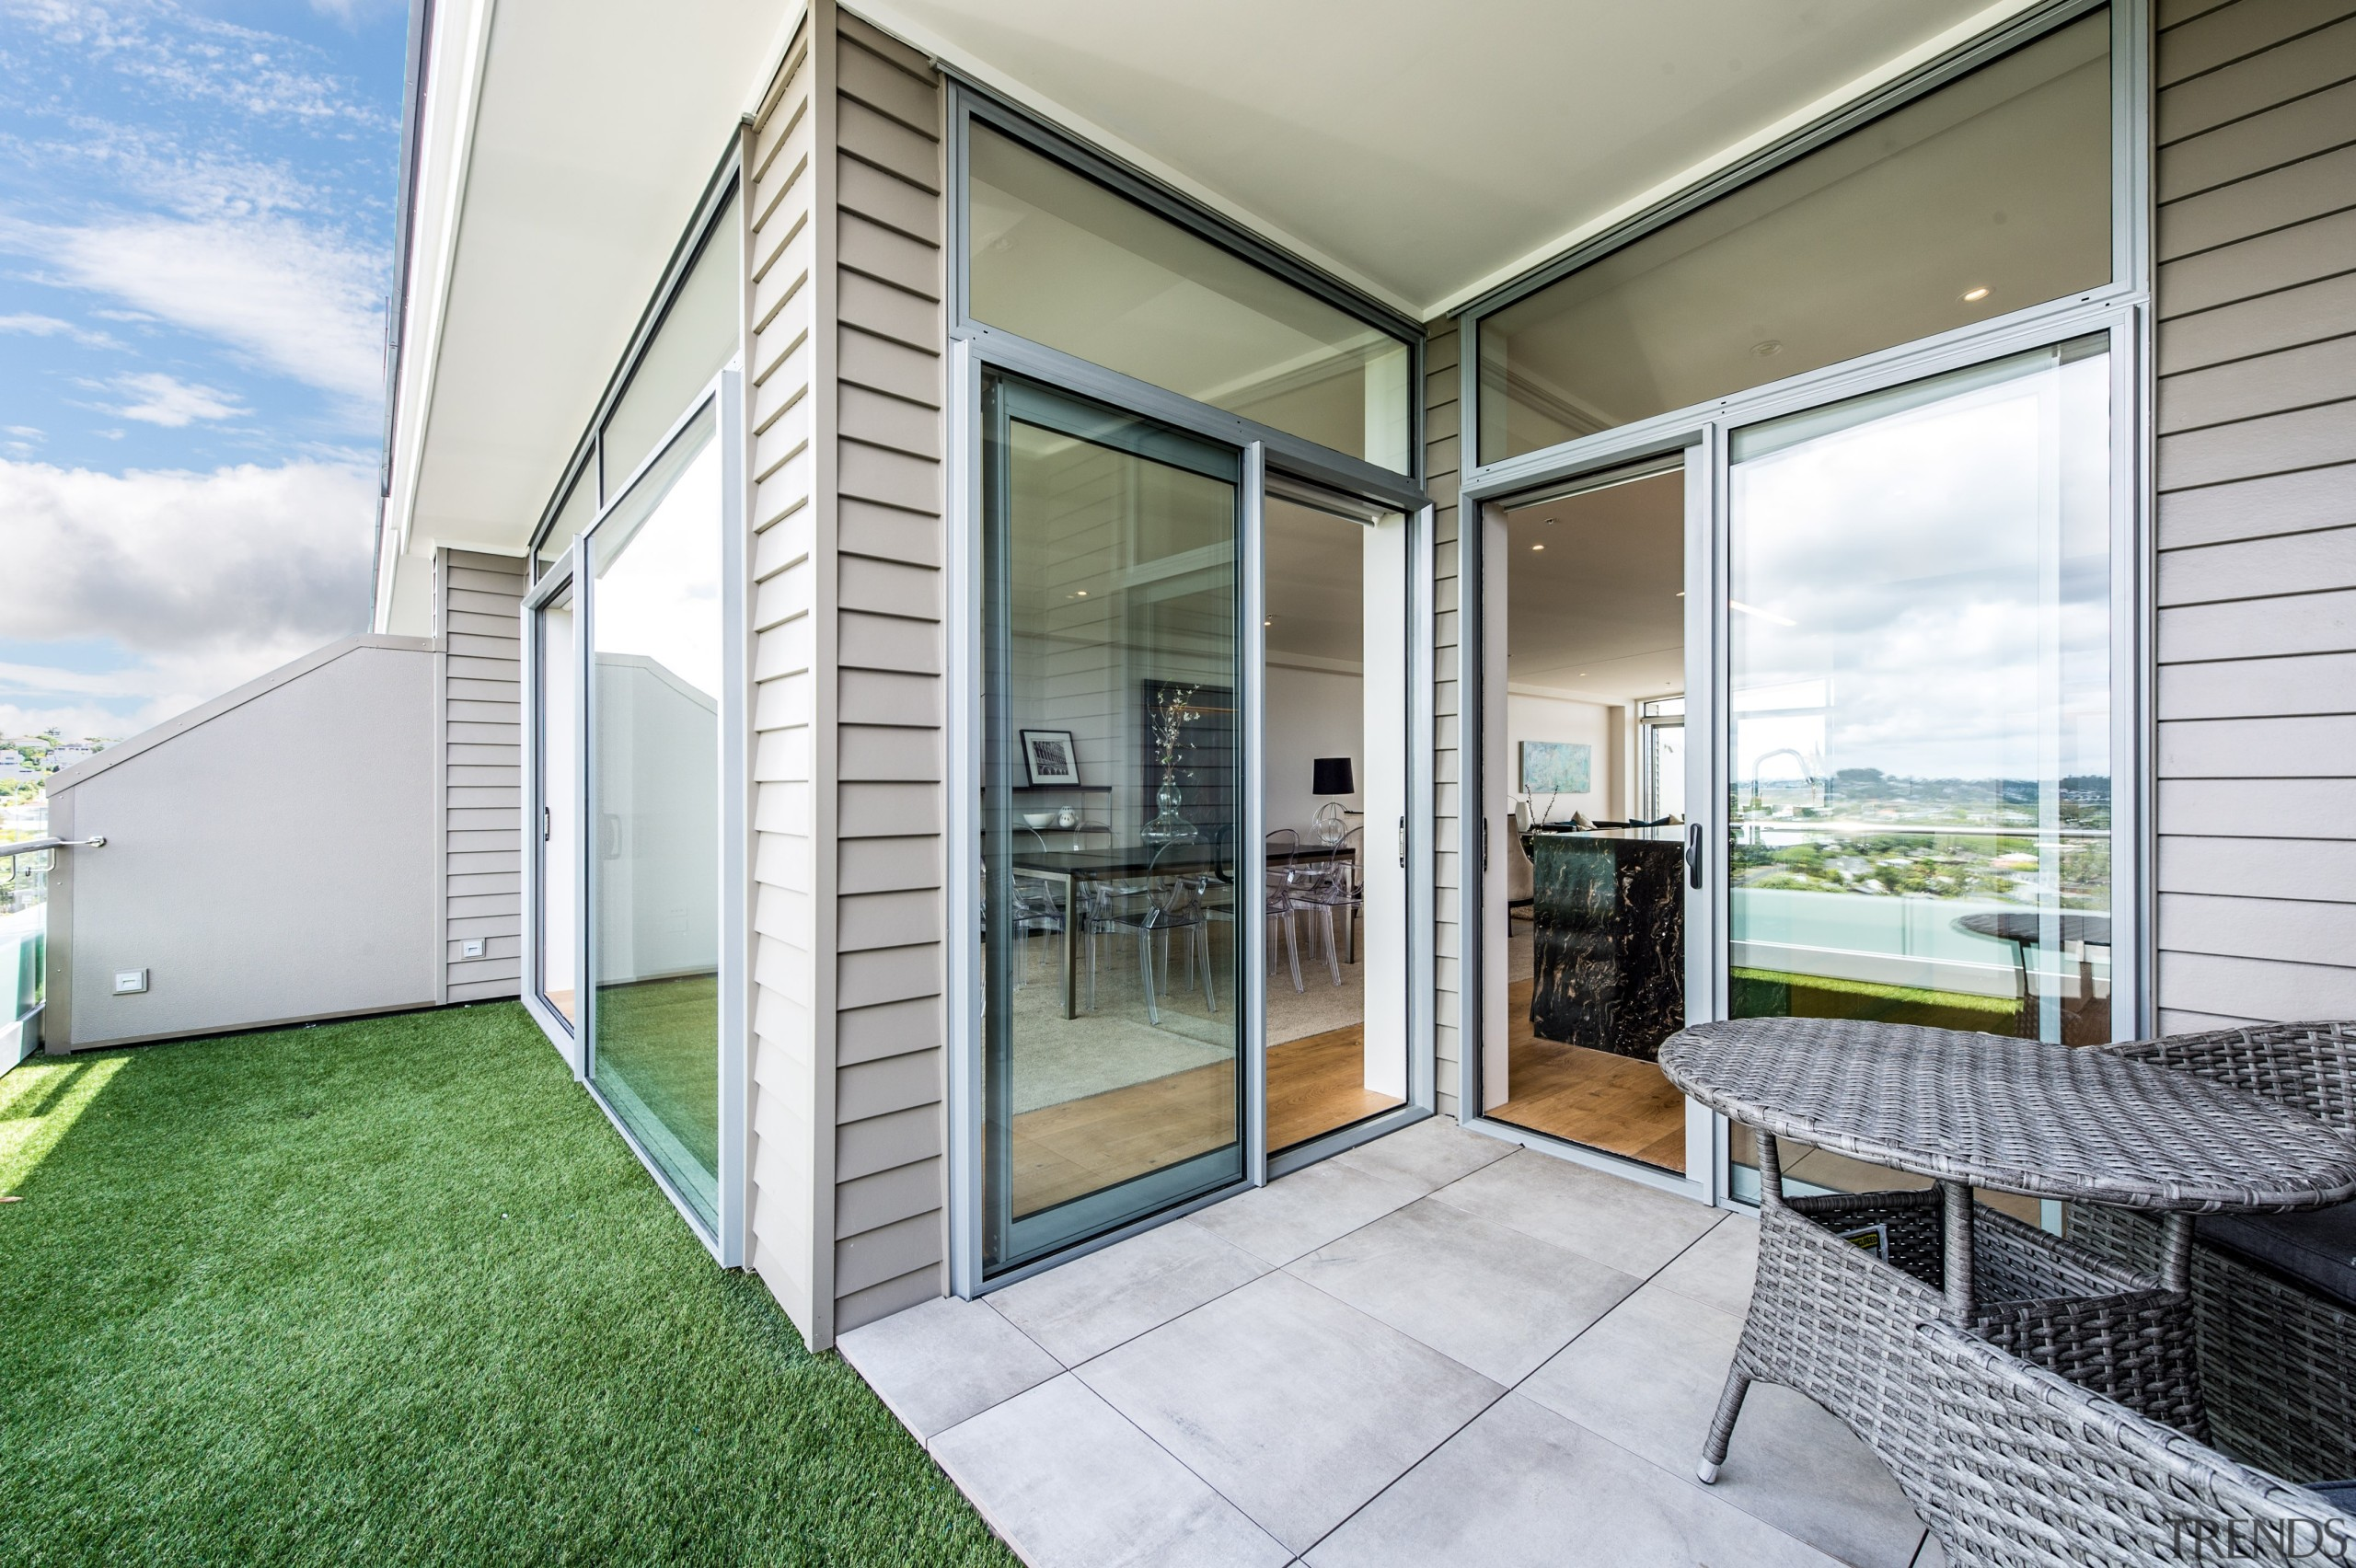 Balcony with view to Rangitoto - Balcony with architecture, daylighting, door, estate, facade, home, house, interior design, property, real estate, window, white